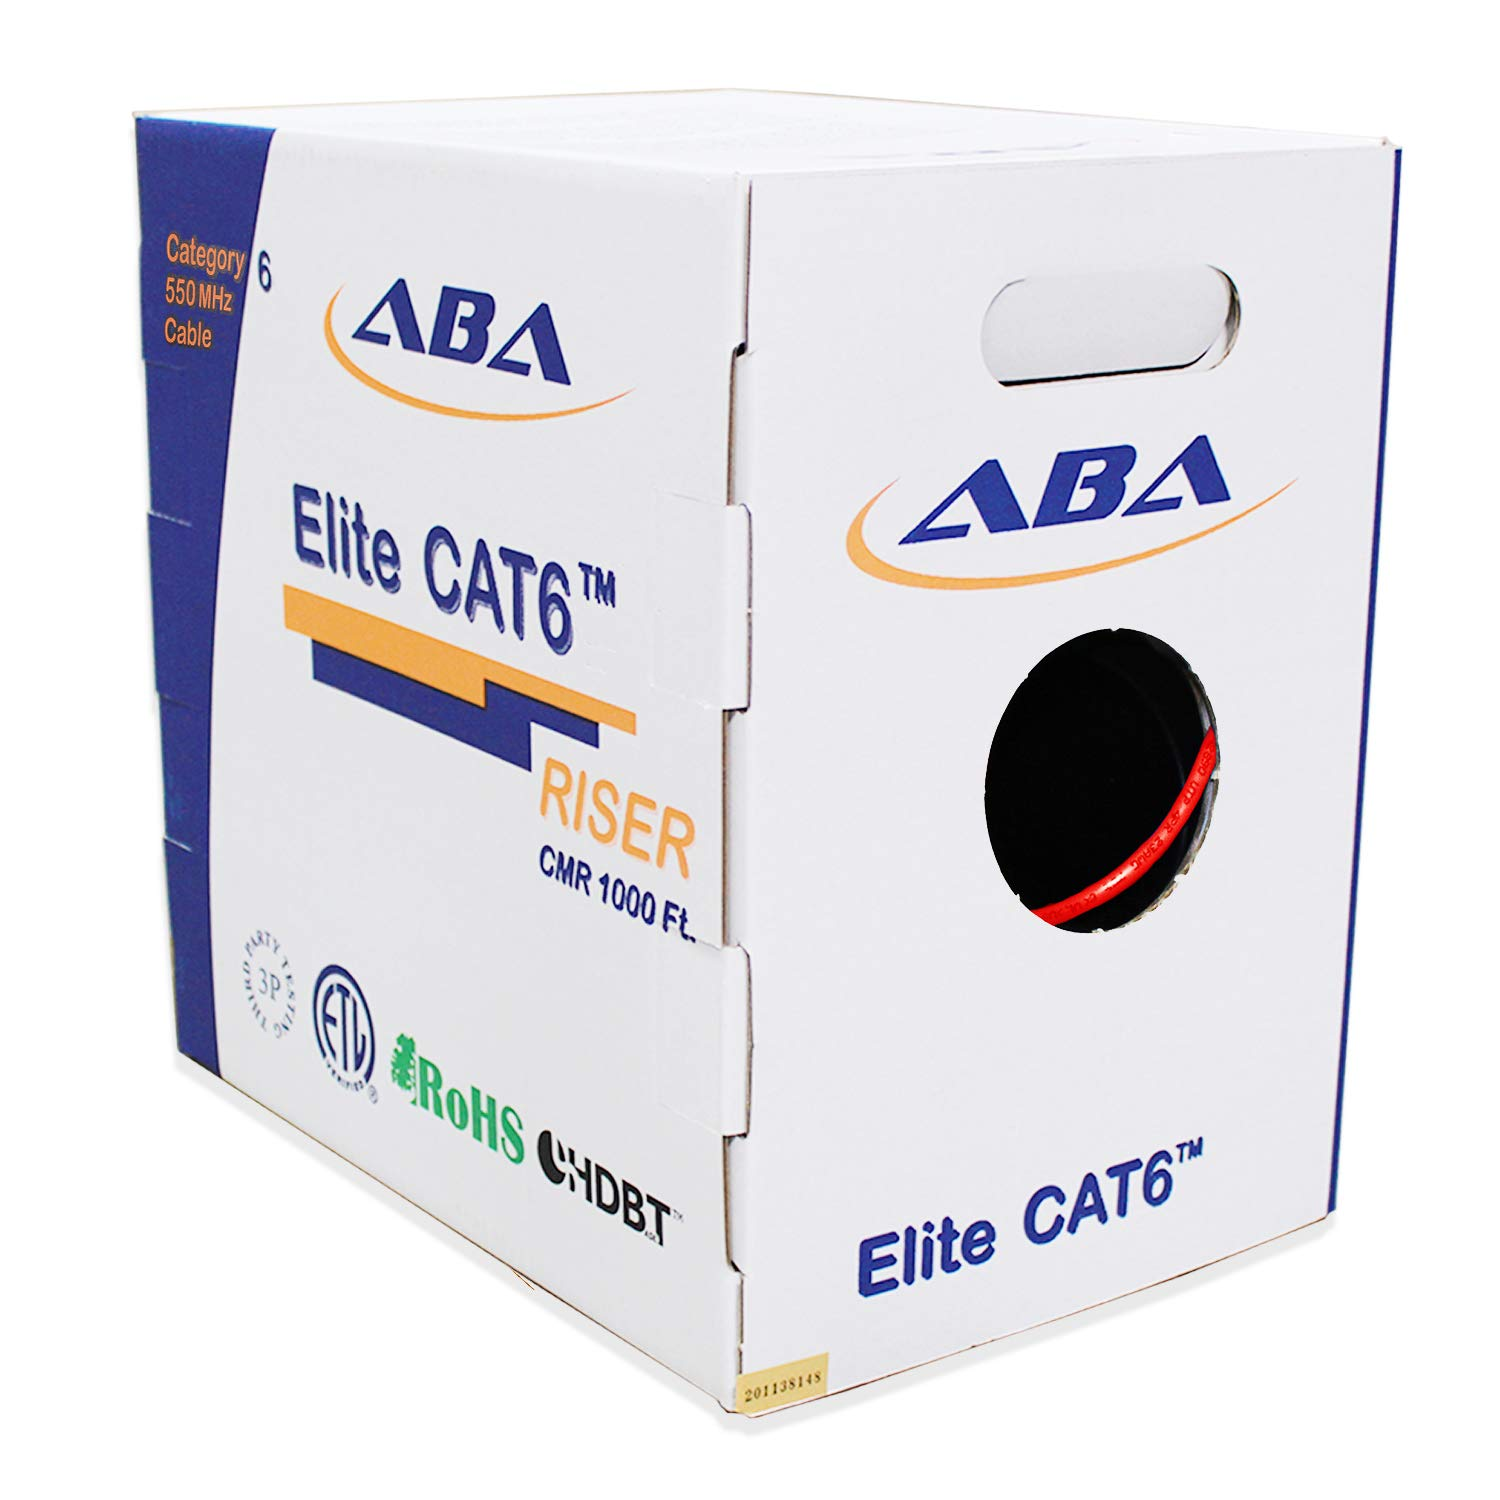 4-Pair UTP PHAT SATELLITE INTL UL ETL CMR 550MHz EZ Pass Thru RJ45 Plug Cat6A Riser CMR LAN Network Data Ethernet Patch Cable 230 feet, White Solid Pure Copper 23 AWG Assembled in USA